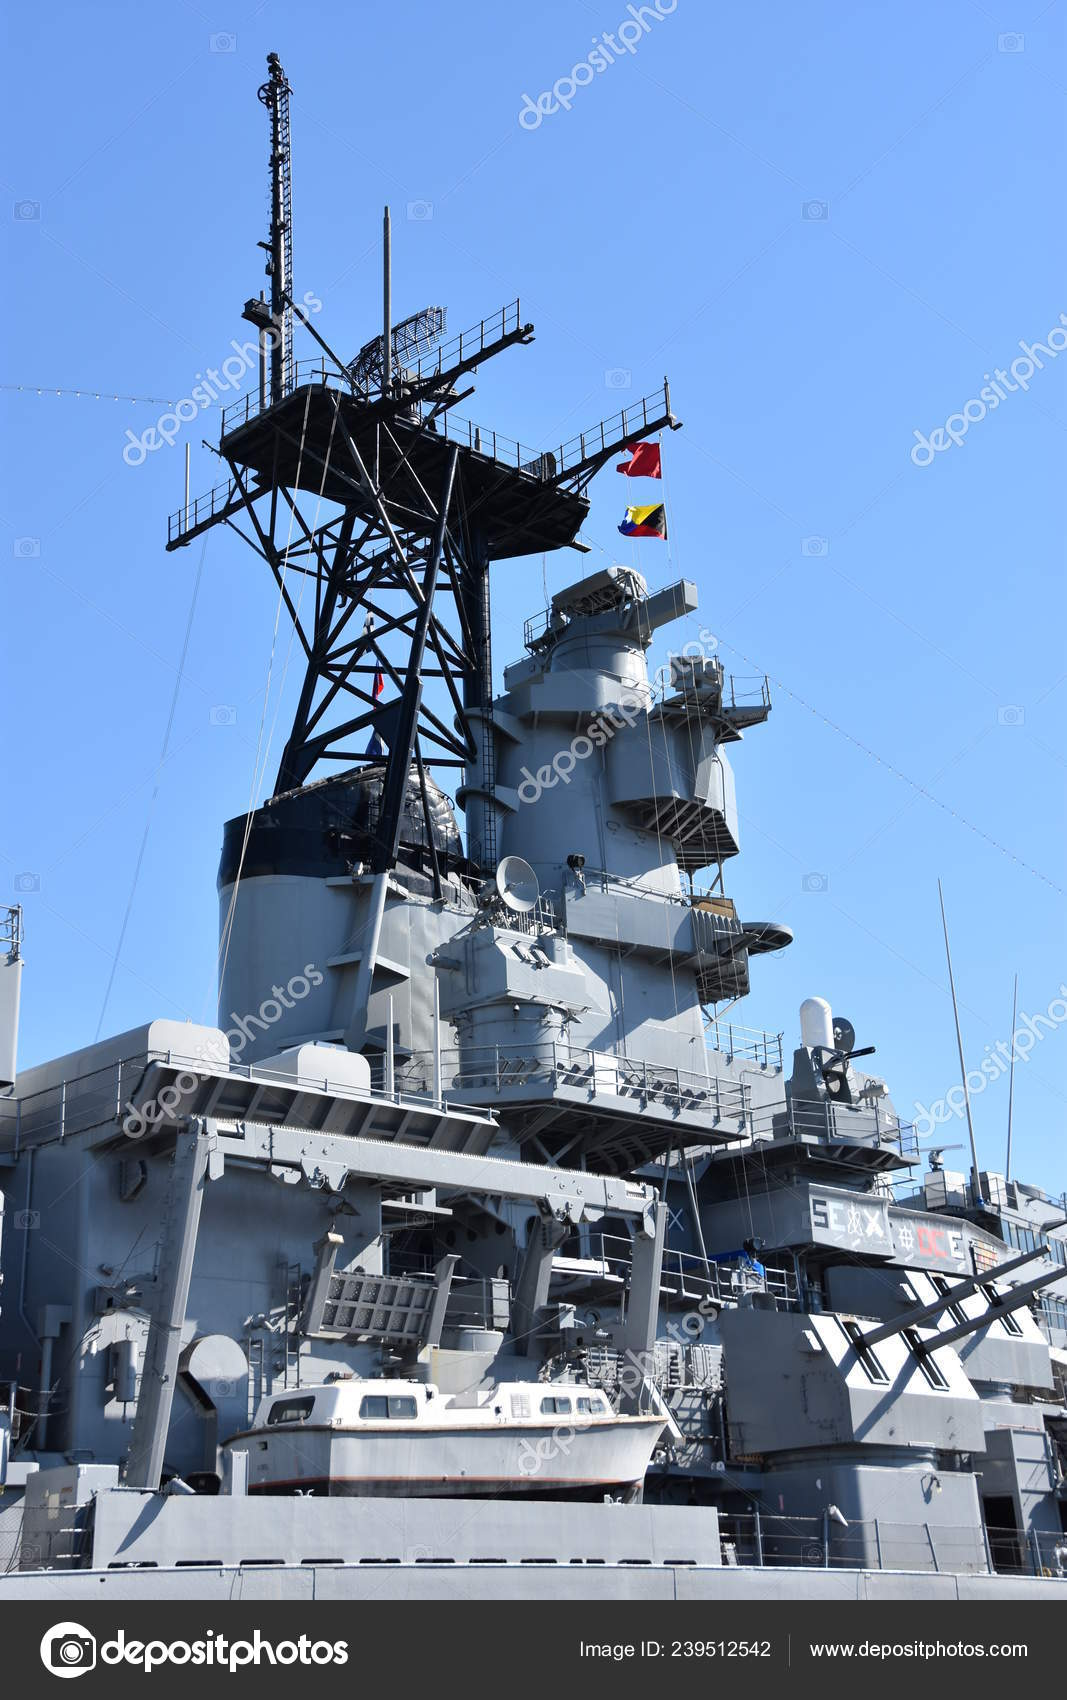 San Pedro Oct Uss Iowa San Pedro California Seen Oct – Stock